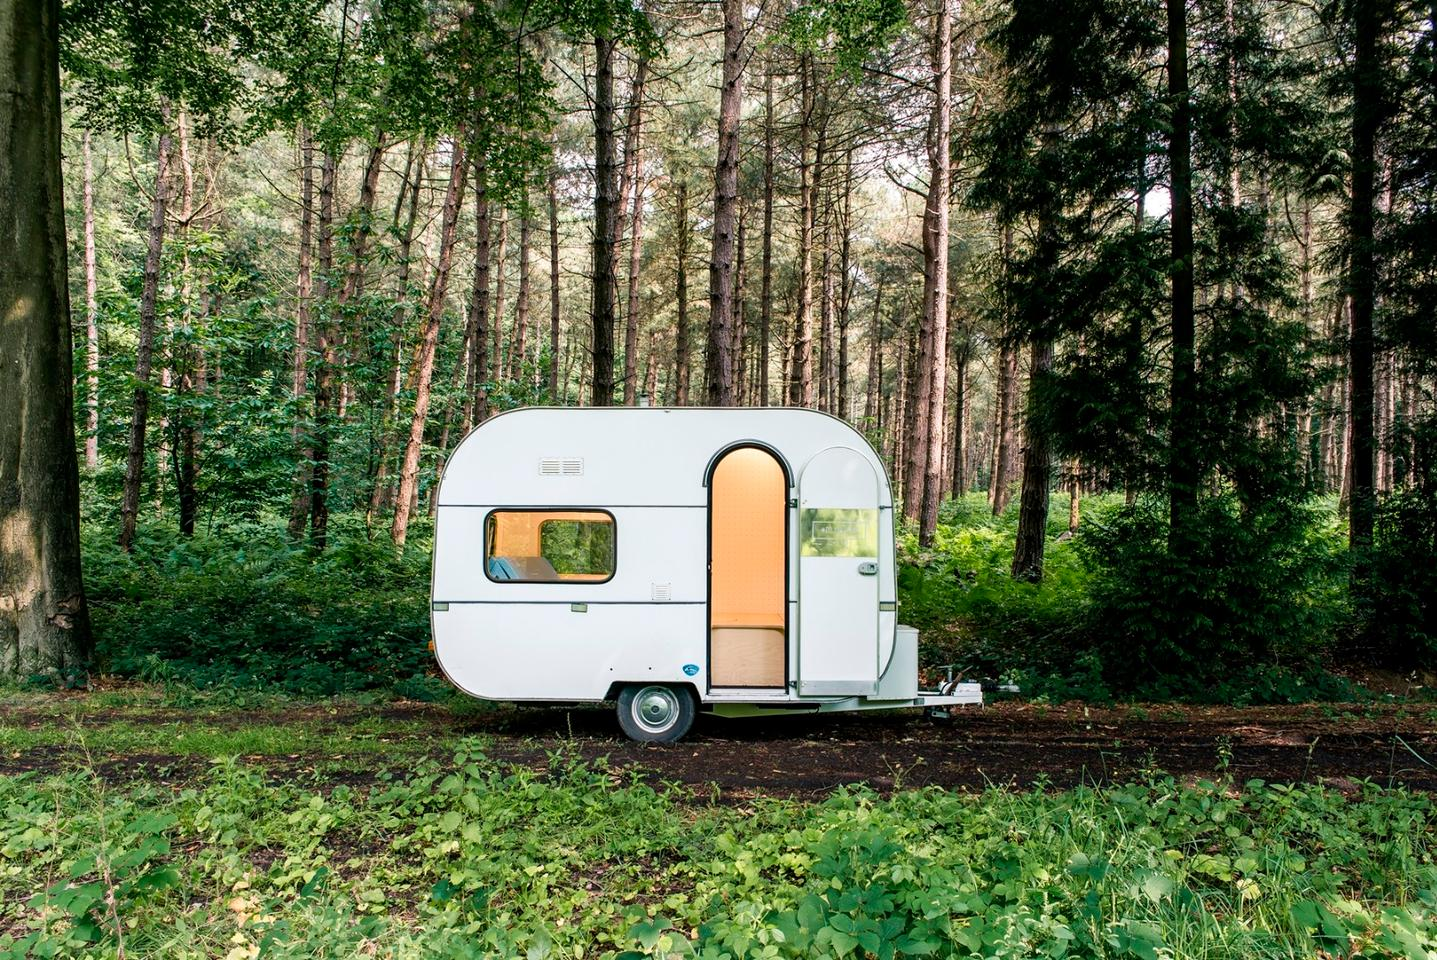 The dojowheels mobile office was conceived by Belgian design firm Five AM